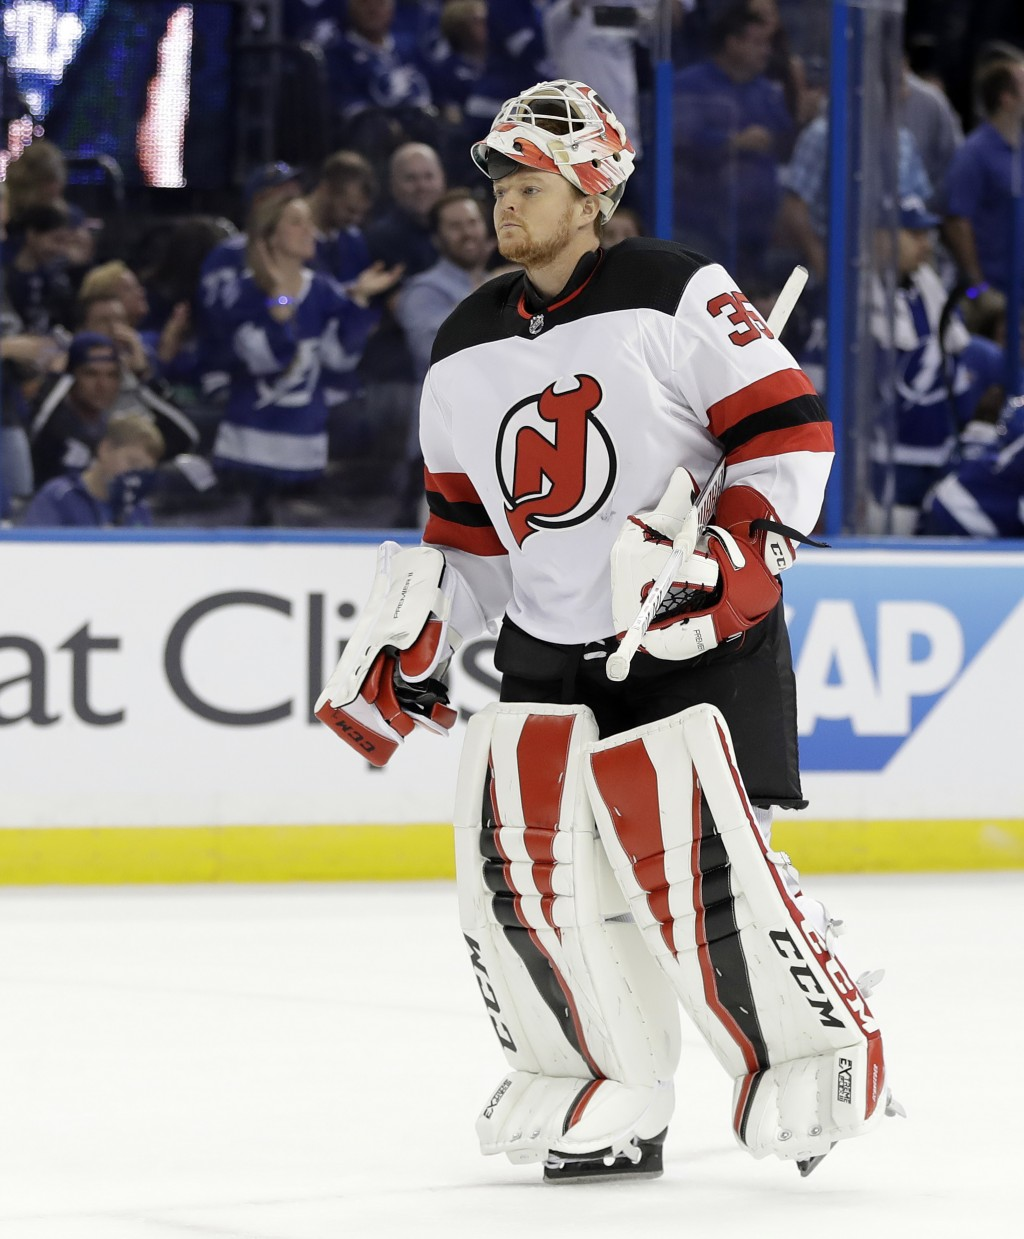 New Jersey Devils goaltender Cory Schneider (35) replaces Keith Kinkaid in the net during the second period of Game 2 of an NHL first-round hockey pla